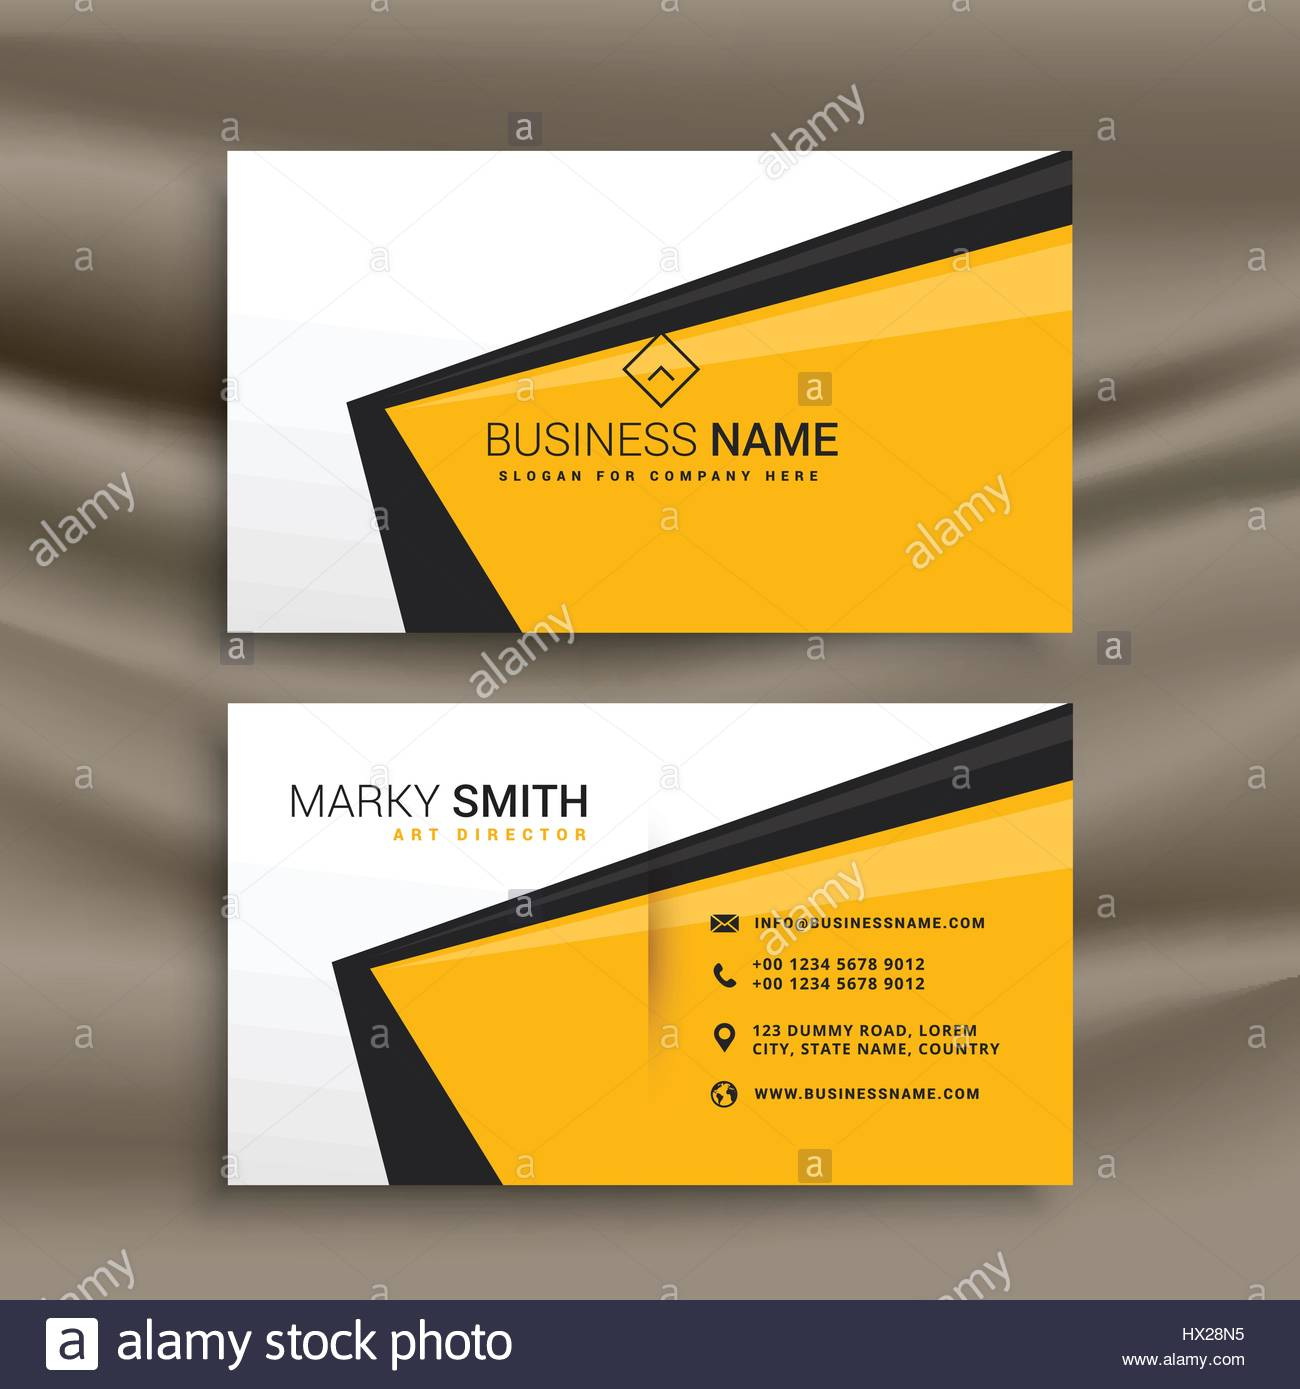 Creative business card design with flat yellow black and white creative business card design with flat yellow black and white colors magicingreecefo Gallery